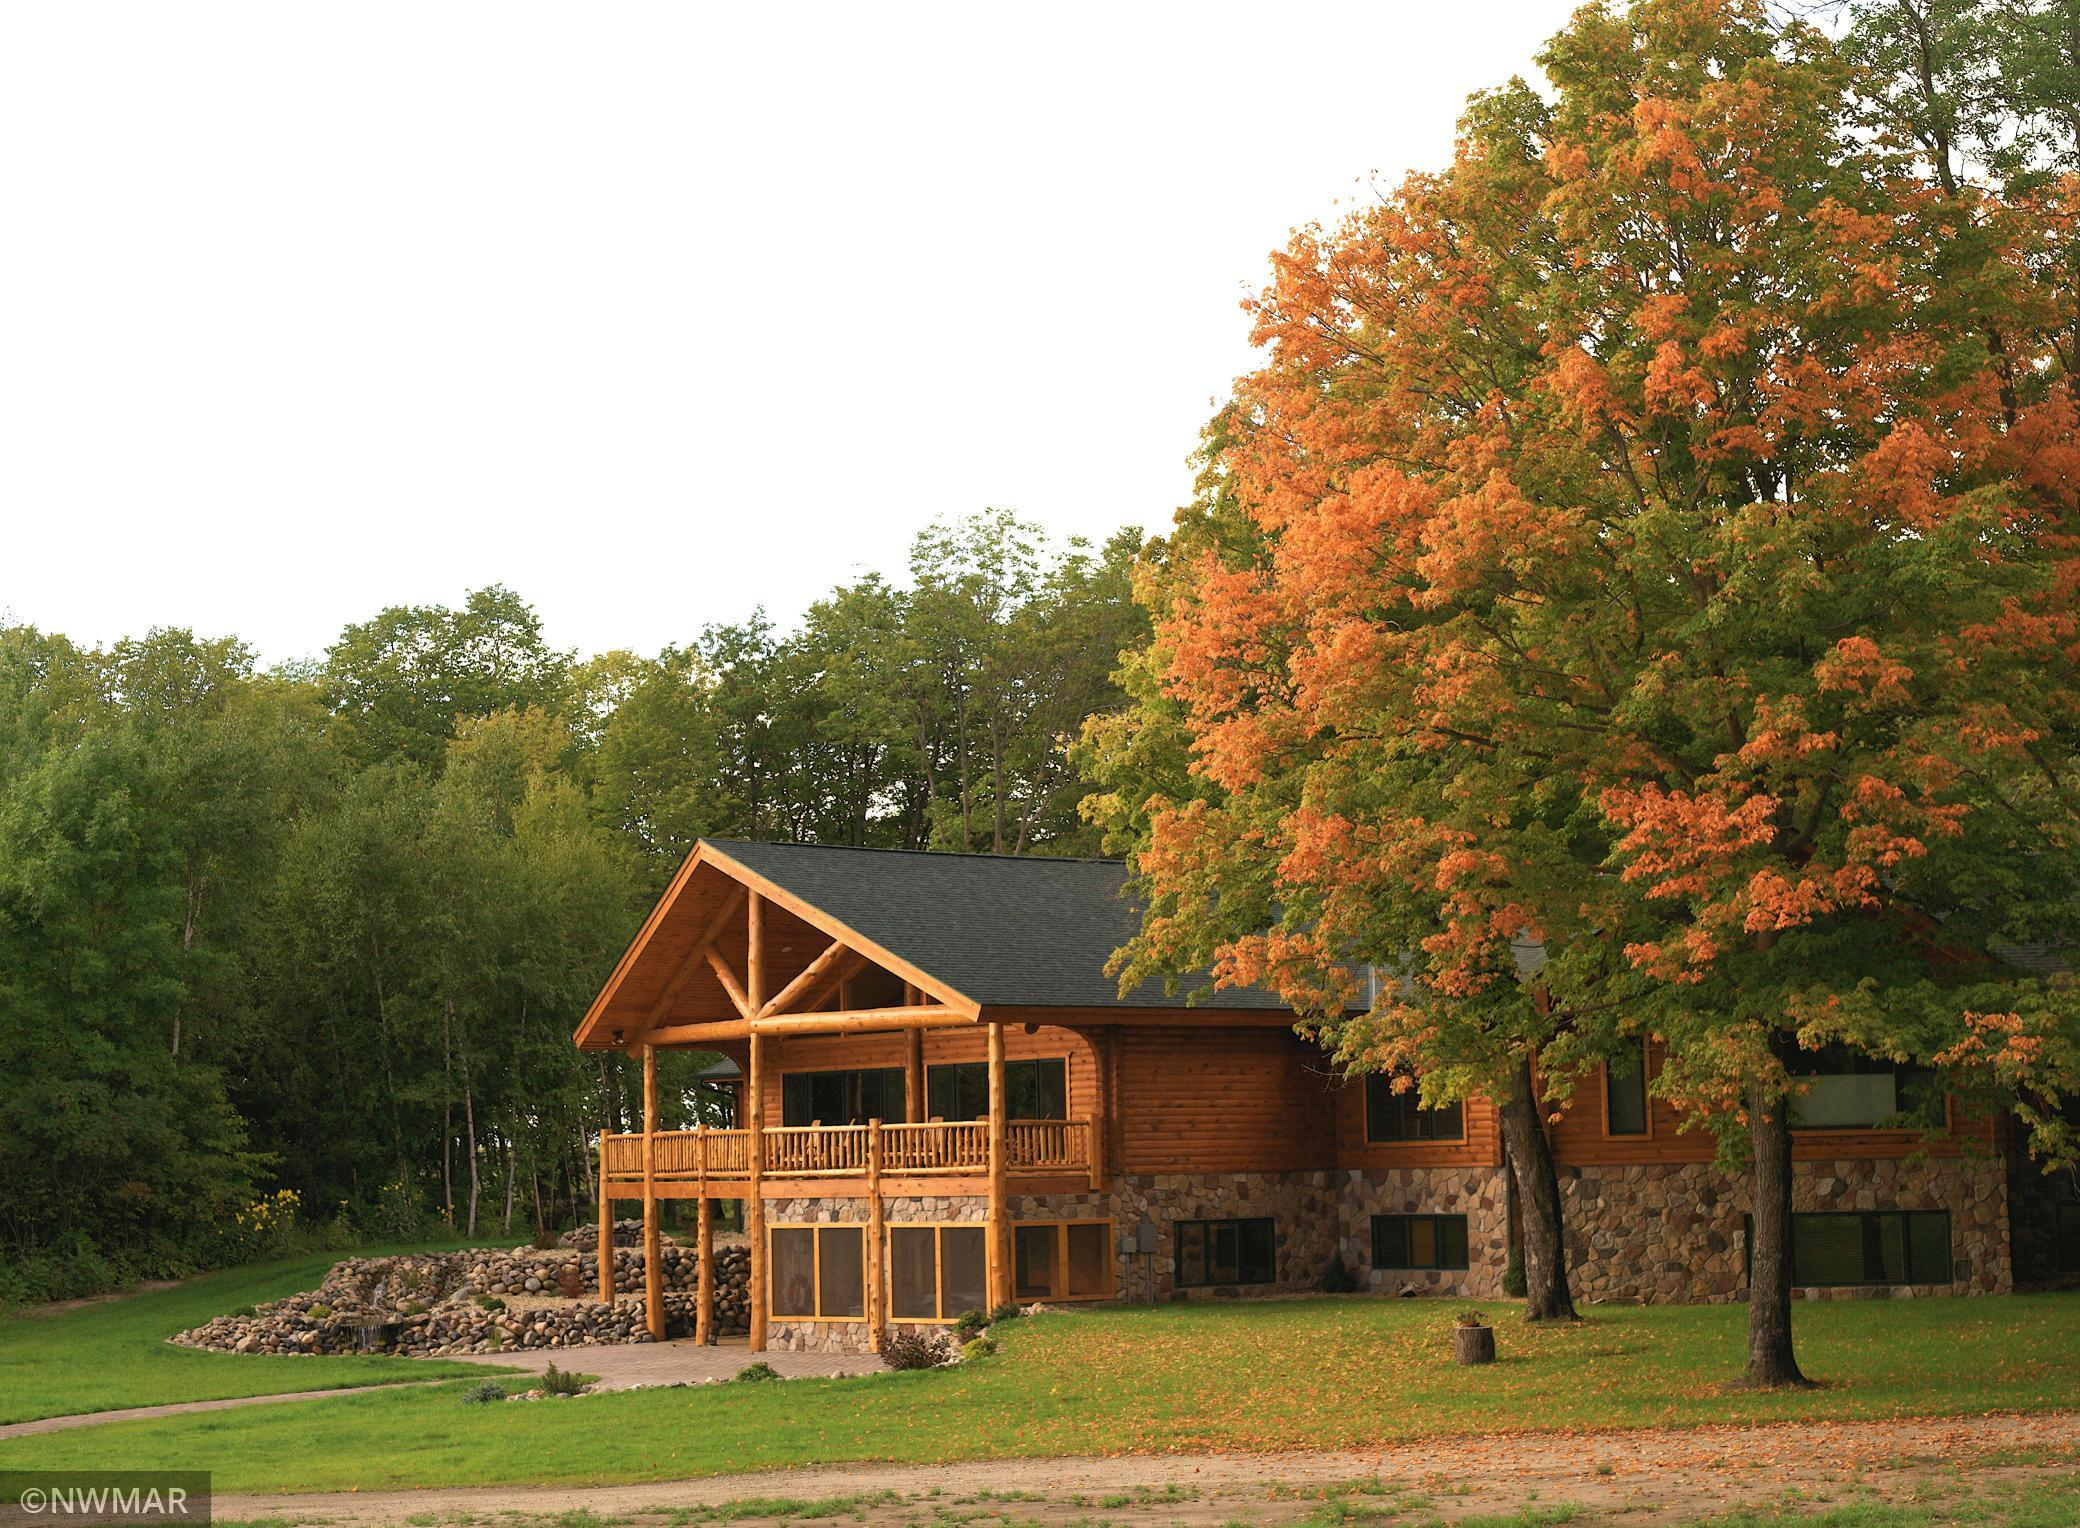 Your opportunity to own the prestigious Woodhaven Retreat on Leech Lake Sucker Bay. This stunning custom Minnesota Log Home is perfectly nestled on a private peninsula with just under 44 acres and over a half mile of lakeshore with a 100' of sand beach, a private road, and surrounded by 1000's of acres of public land. This 5 bedroom, 6.5 bath, 8,495 sq ft home features custom hand scribed rustic log railings, high-end chef's kitchen, custom hickory cabinets and granite countertops throughout, hickory hardwood floors and custom windows with perfect views of the lake and sunsets. Come relax by the beautiful stone fireplaces nestled up with a hot cup of coco and melt away in the hot  tub while you watch the bright stars on a clear evening or end your day in the sauna. Elevator & laundry on both levels makes this perfect for all ages.  Perfect for year round activities including boating, hiking, snowmobiling, and more! Includes detached garage with extra sleeping quarters, cabin & gazebo.